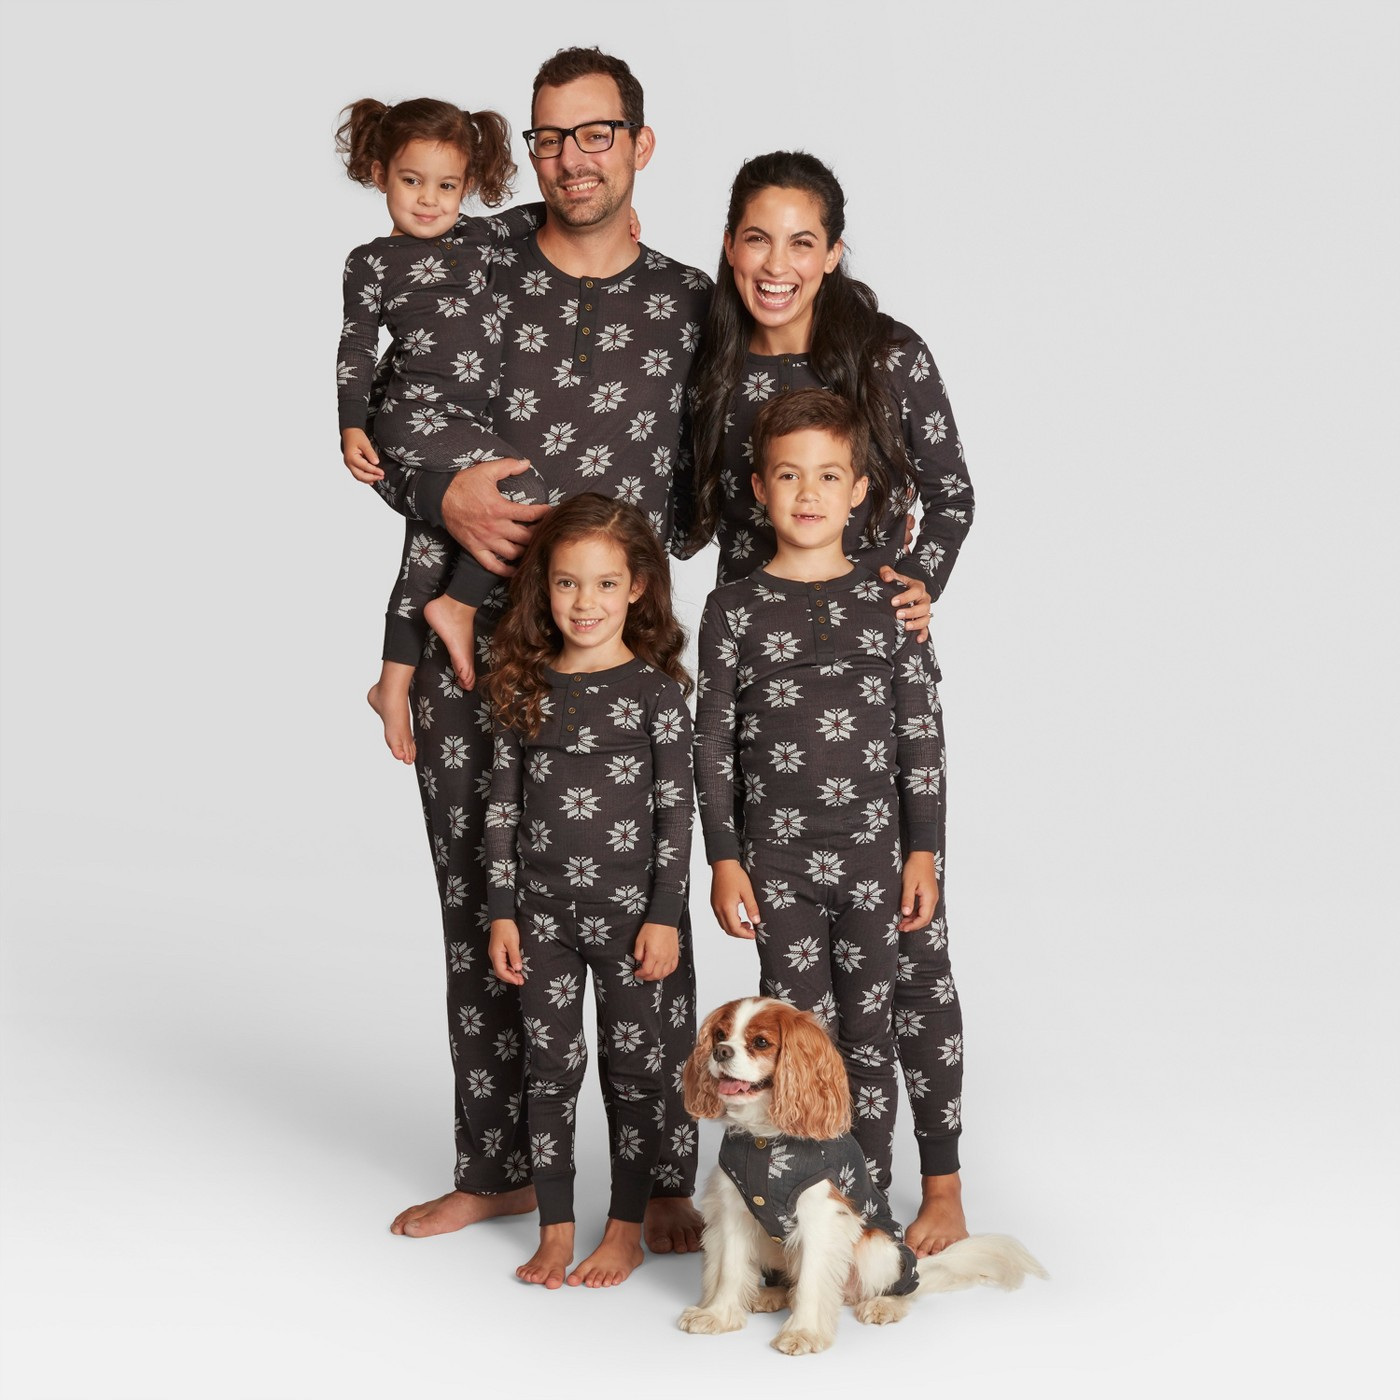 Hearth & Hand with Magnolia Holiday Fair Isle Family Pajamas Collection